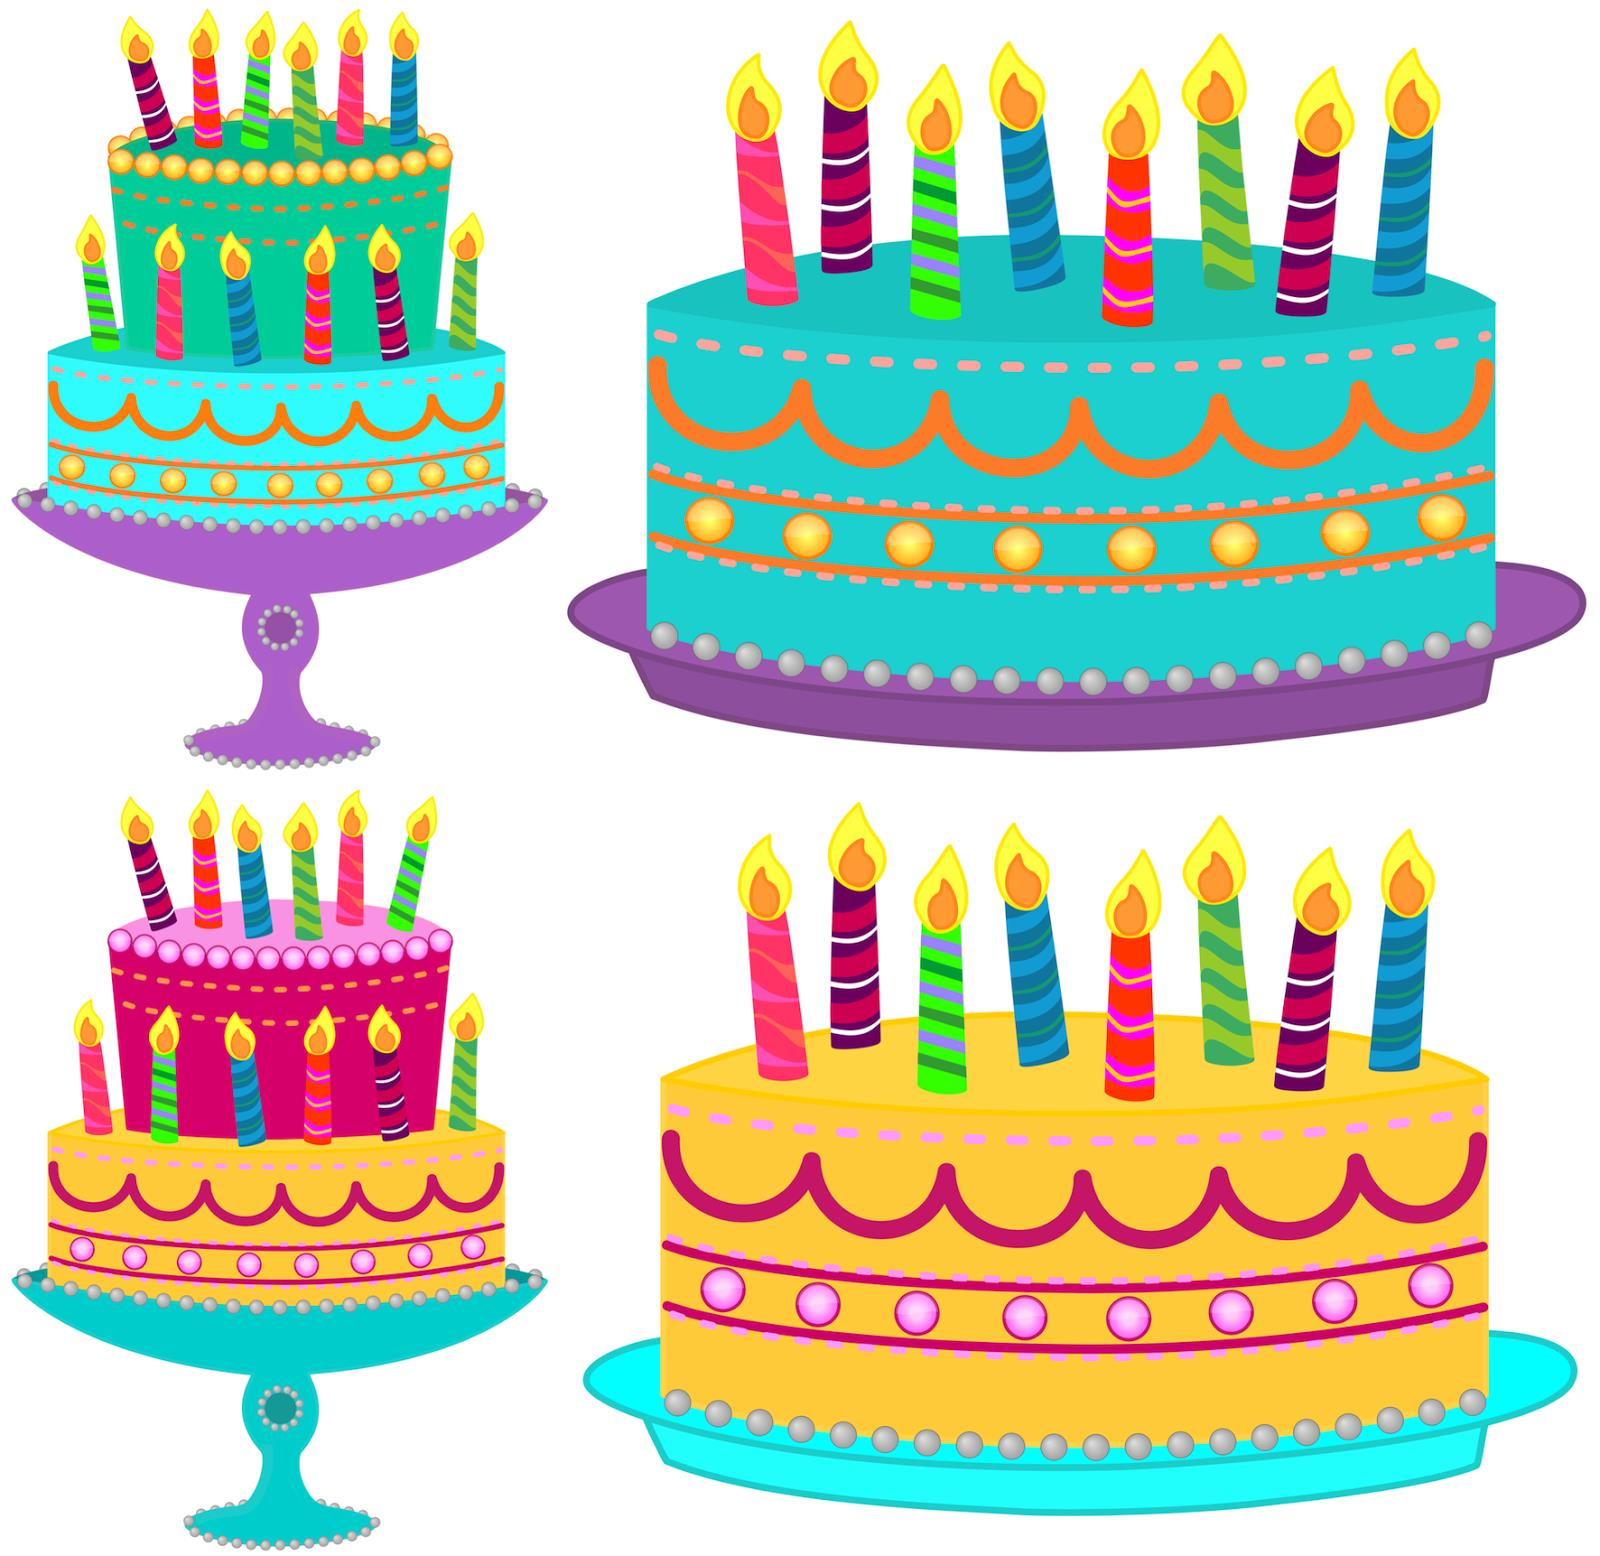 clipart images of birthday cakes ; ed4ad91ff85a7594e1cbec4a67f98bbe